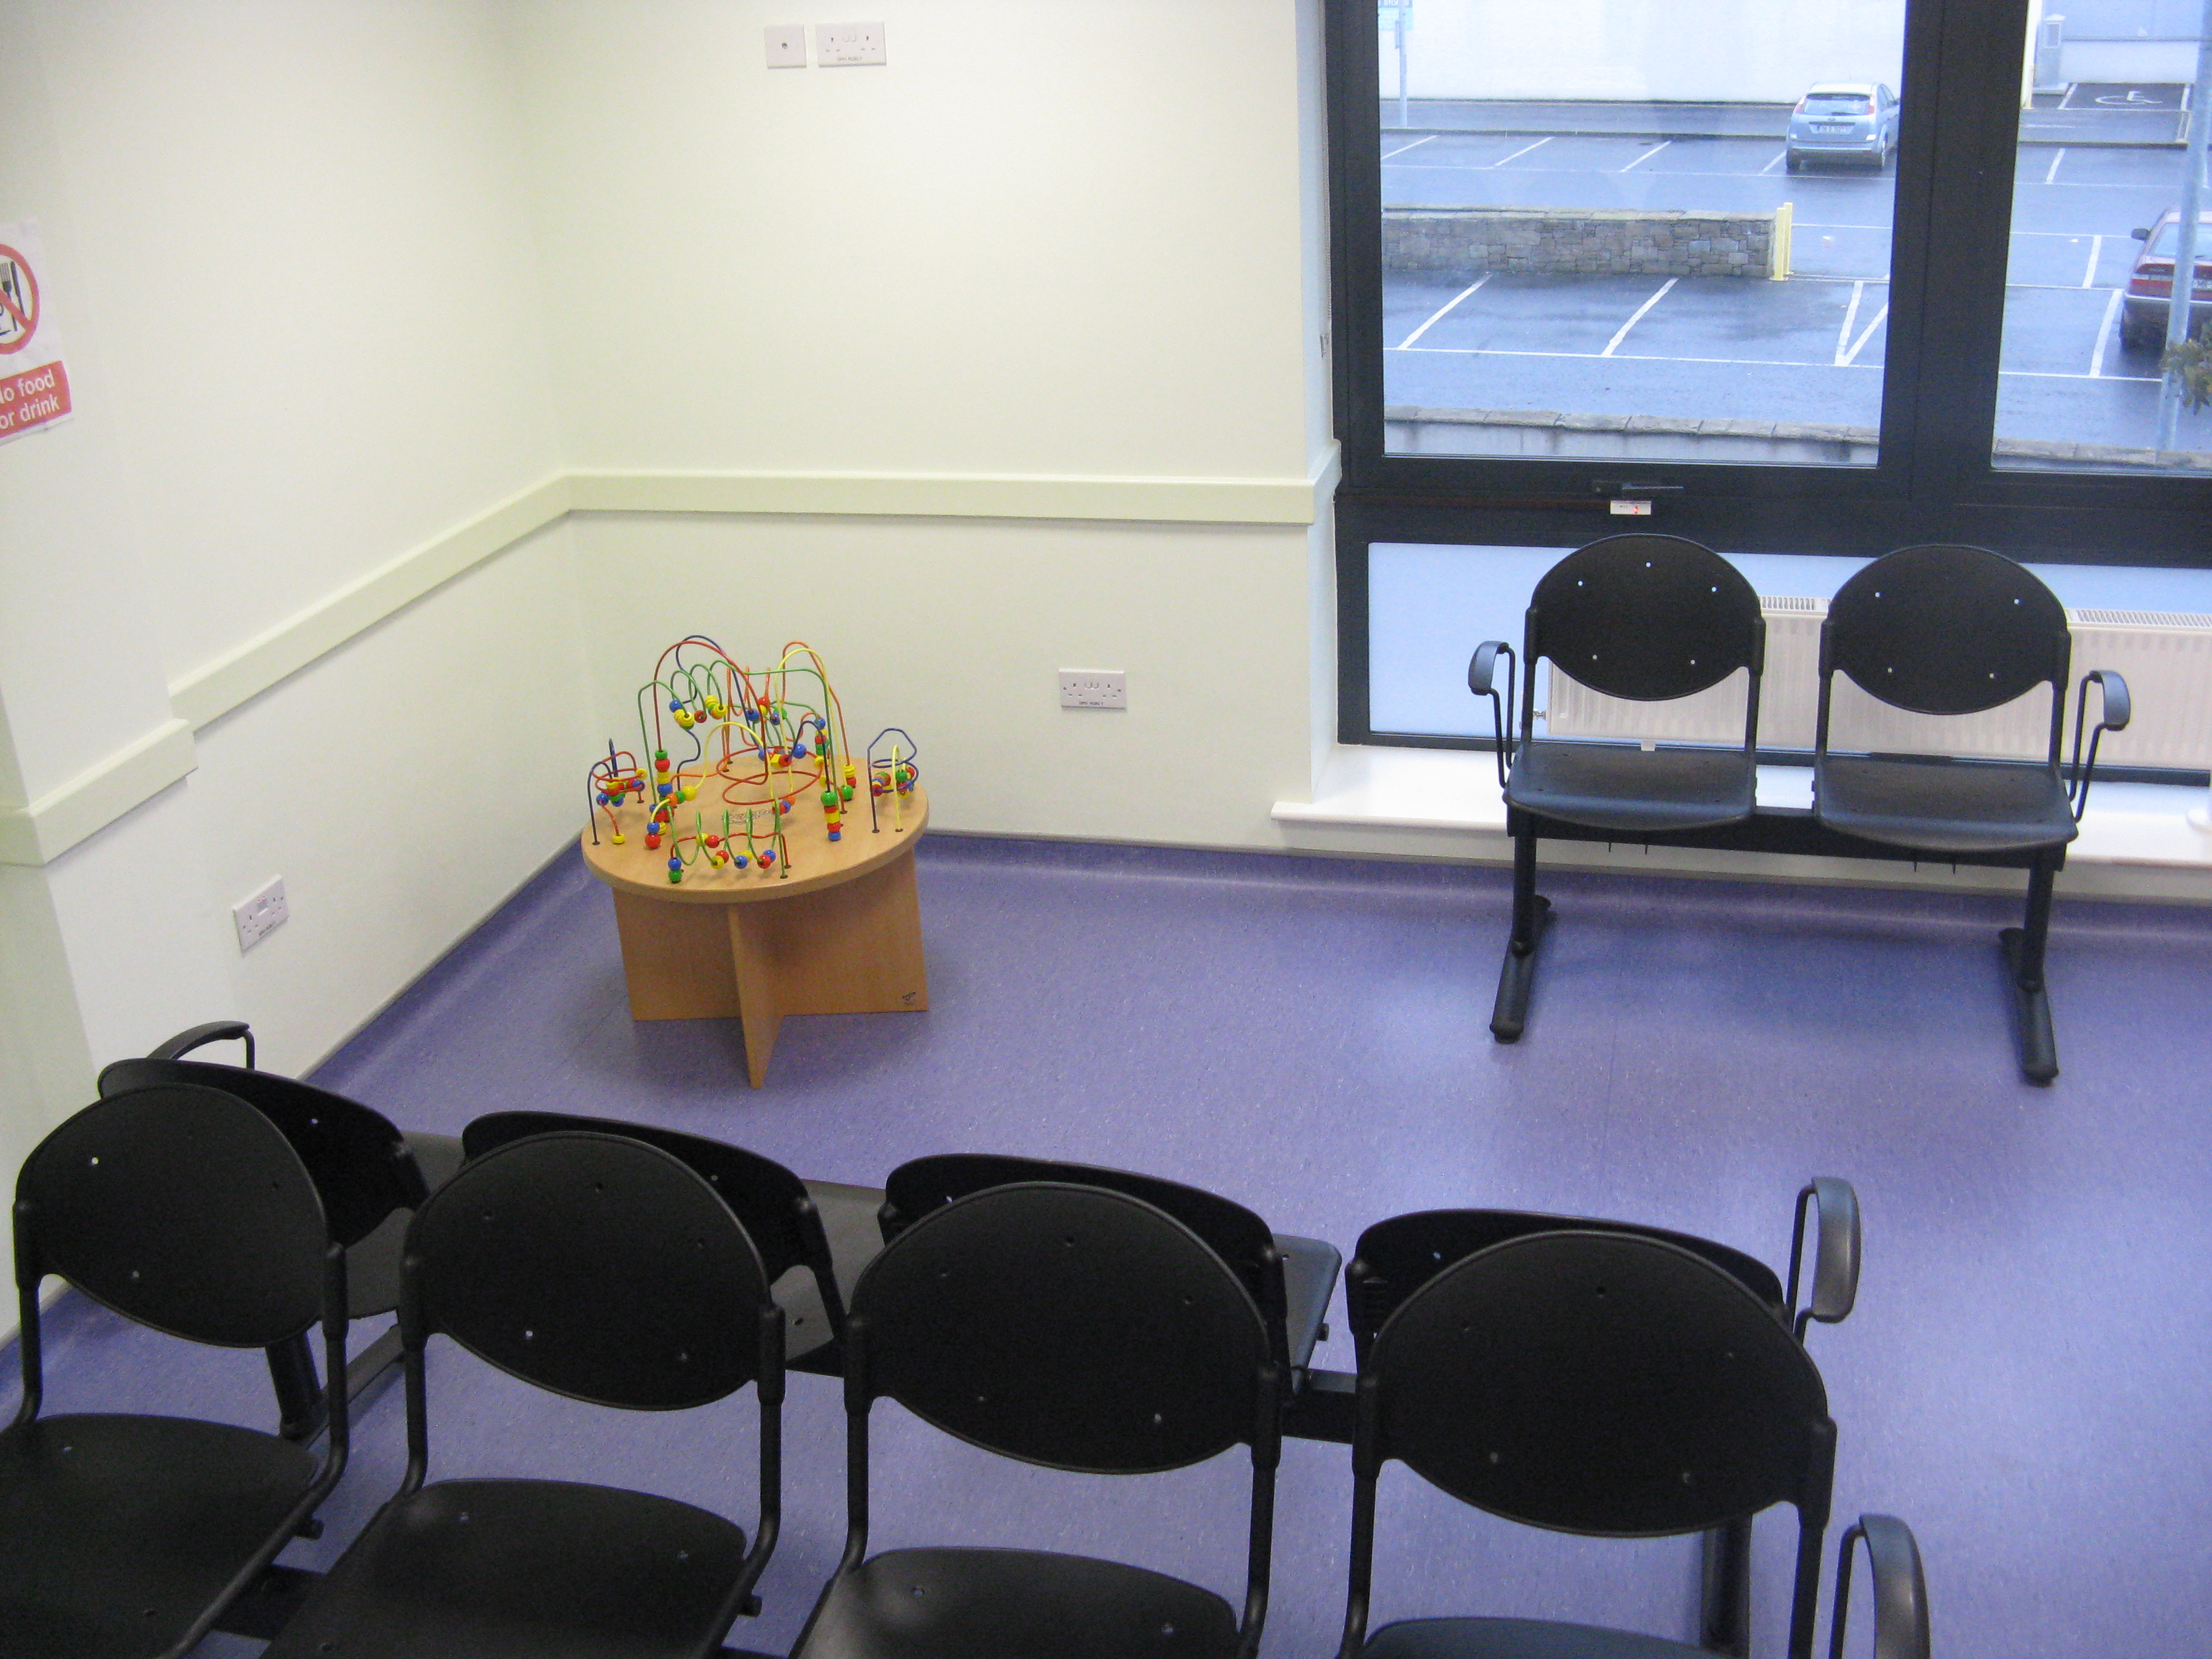 picture 2 of waiting room